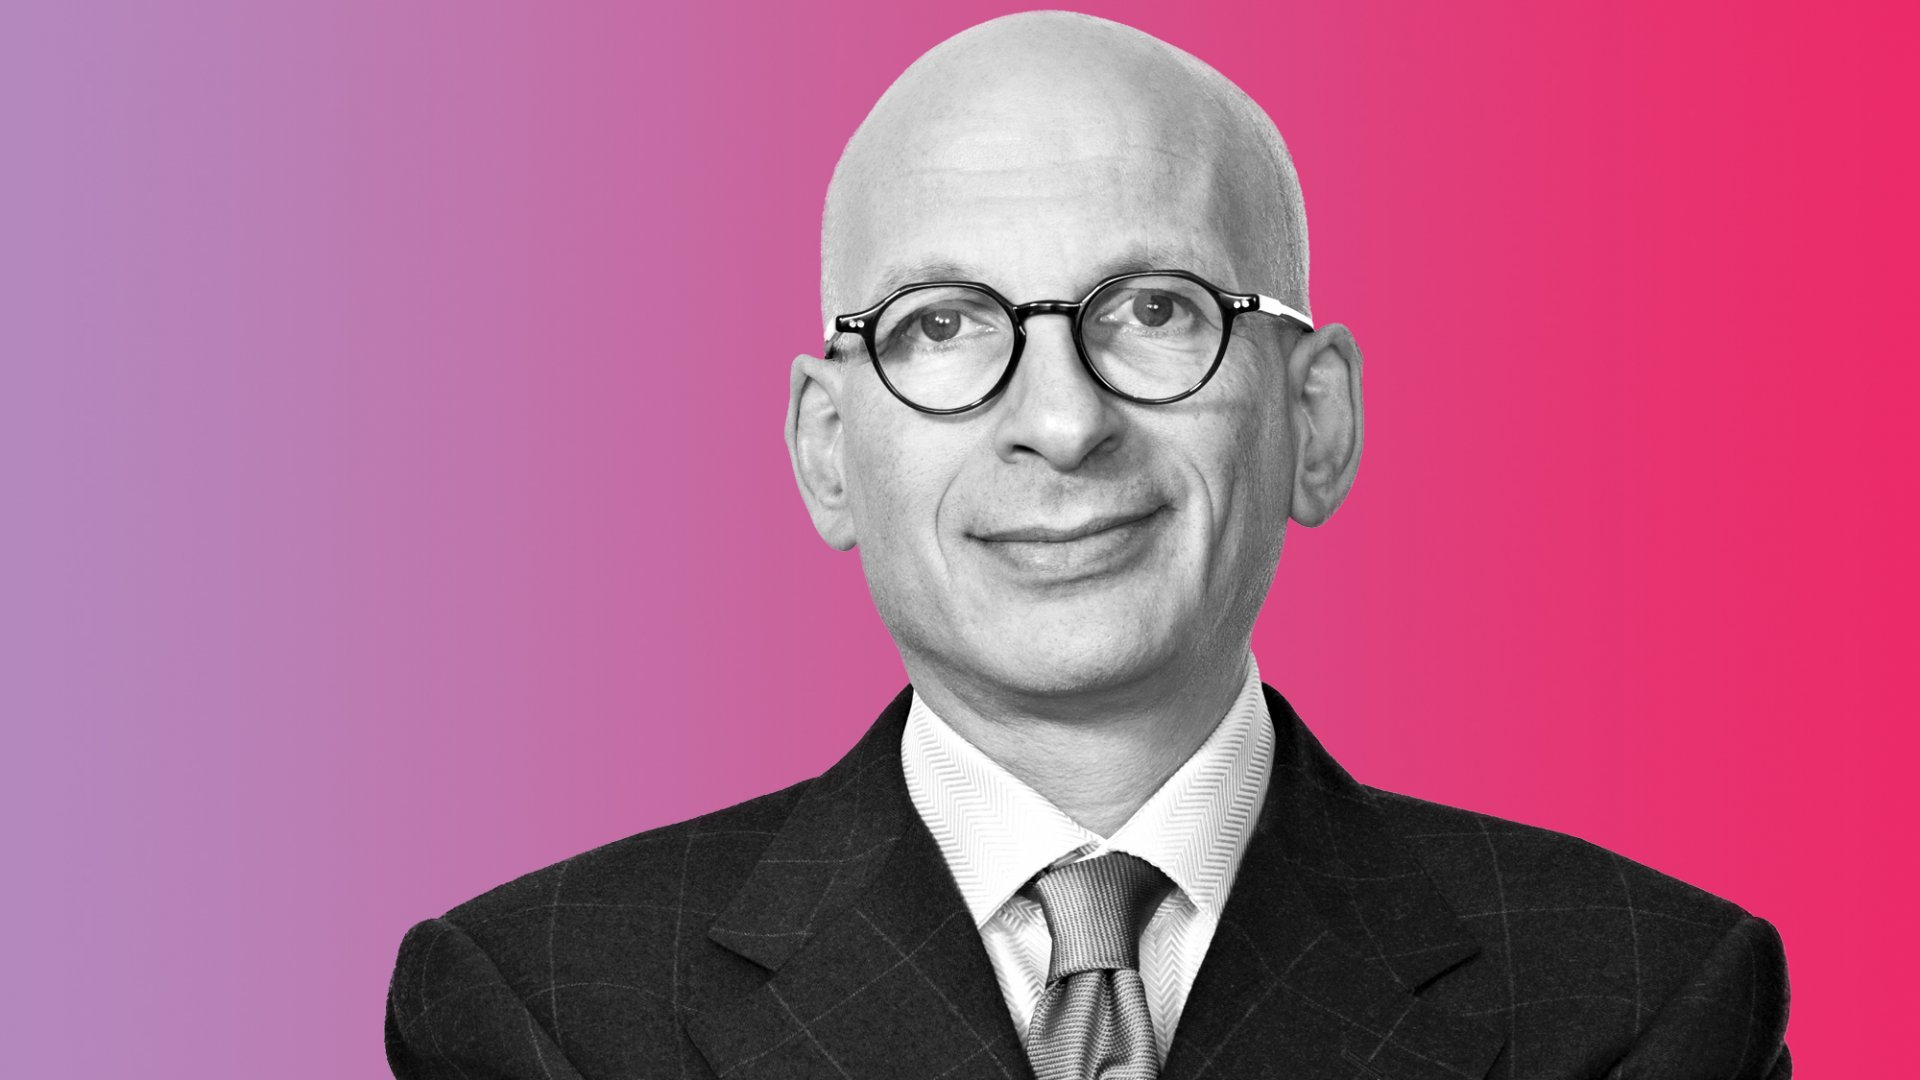 Register Now: Seth Godin on How to Build a Great Brand--Even in a Crisis